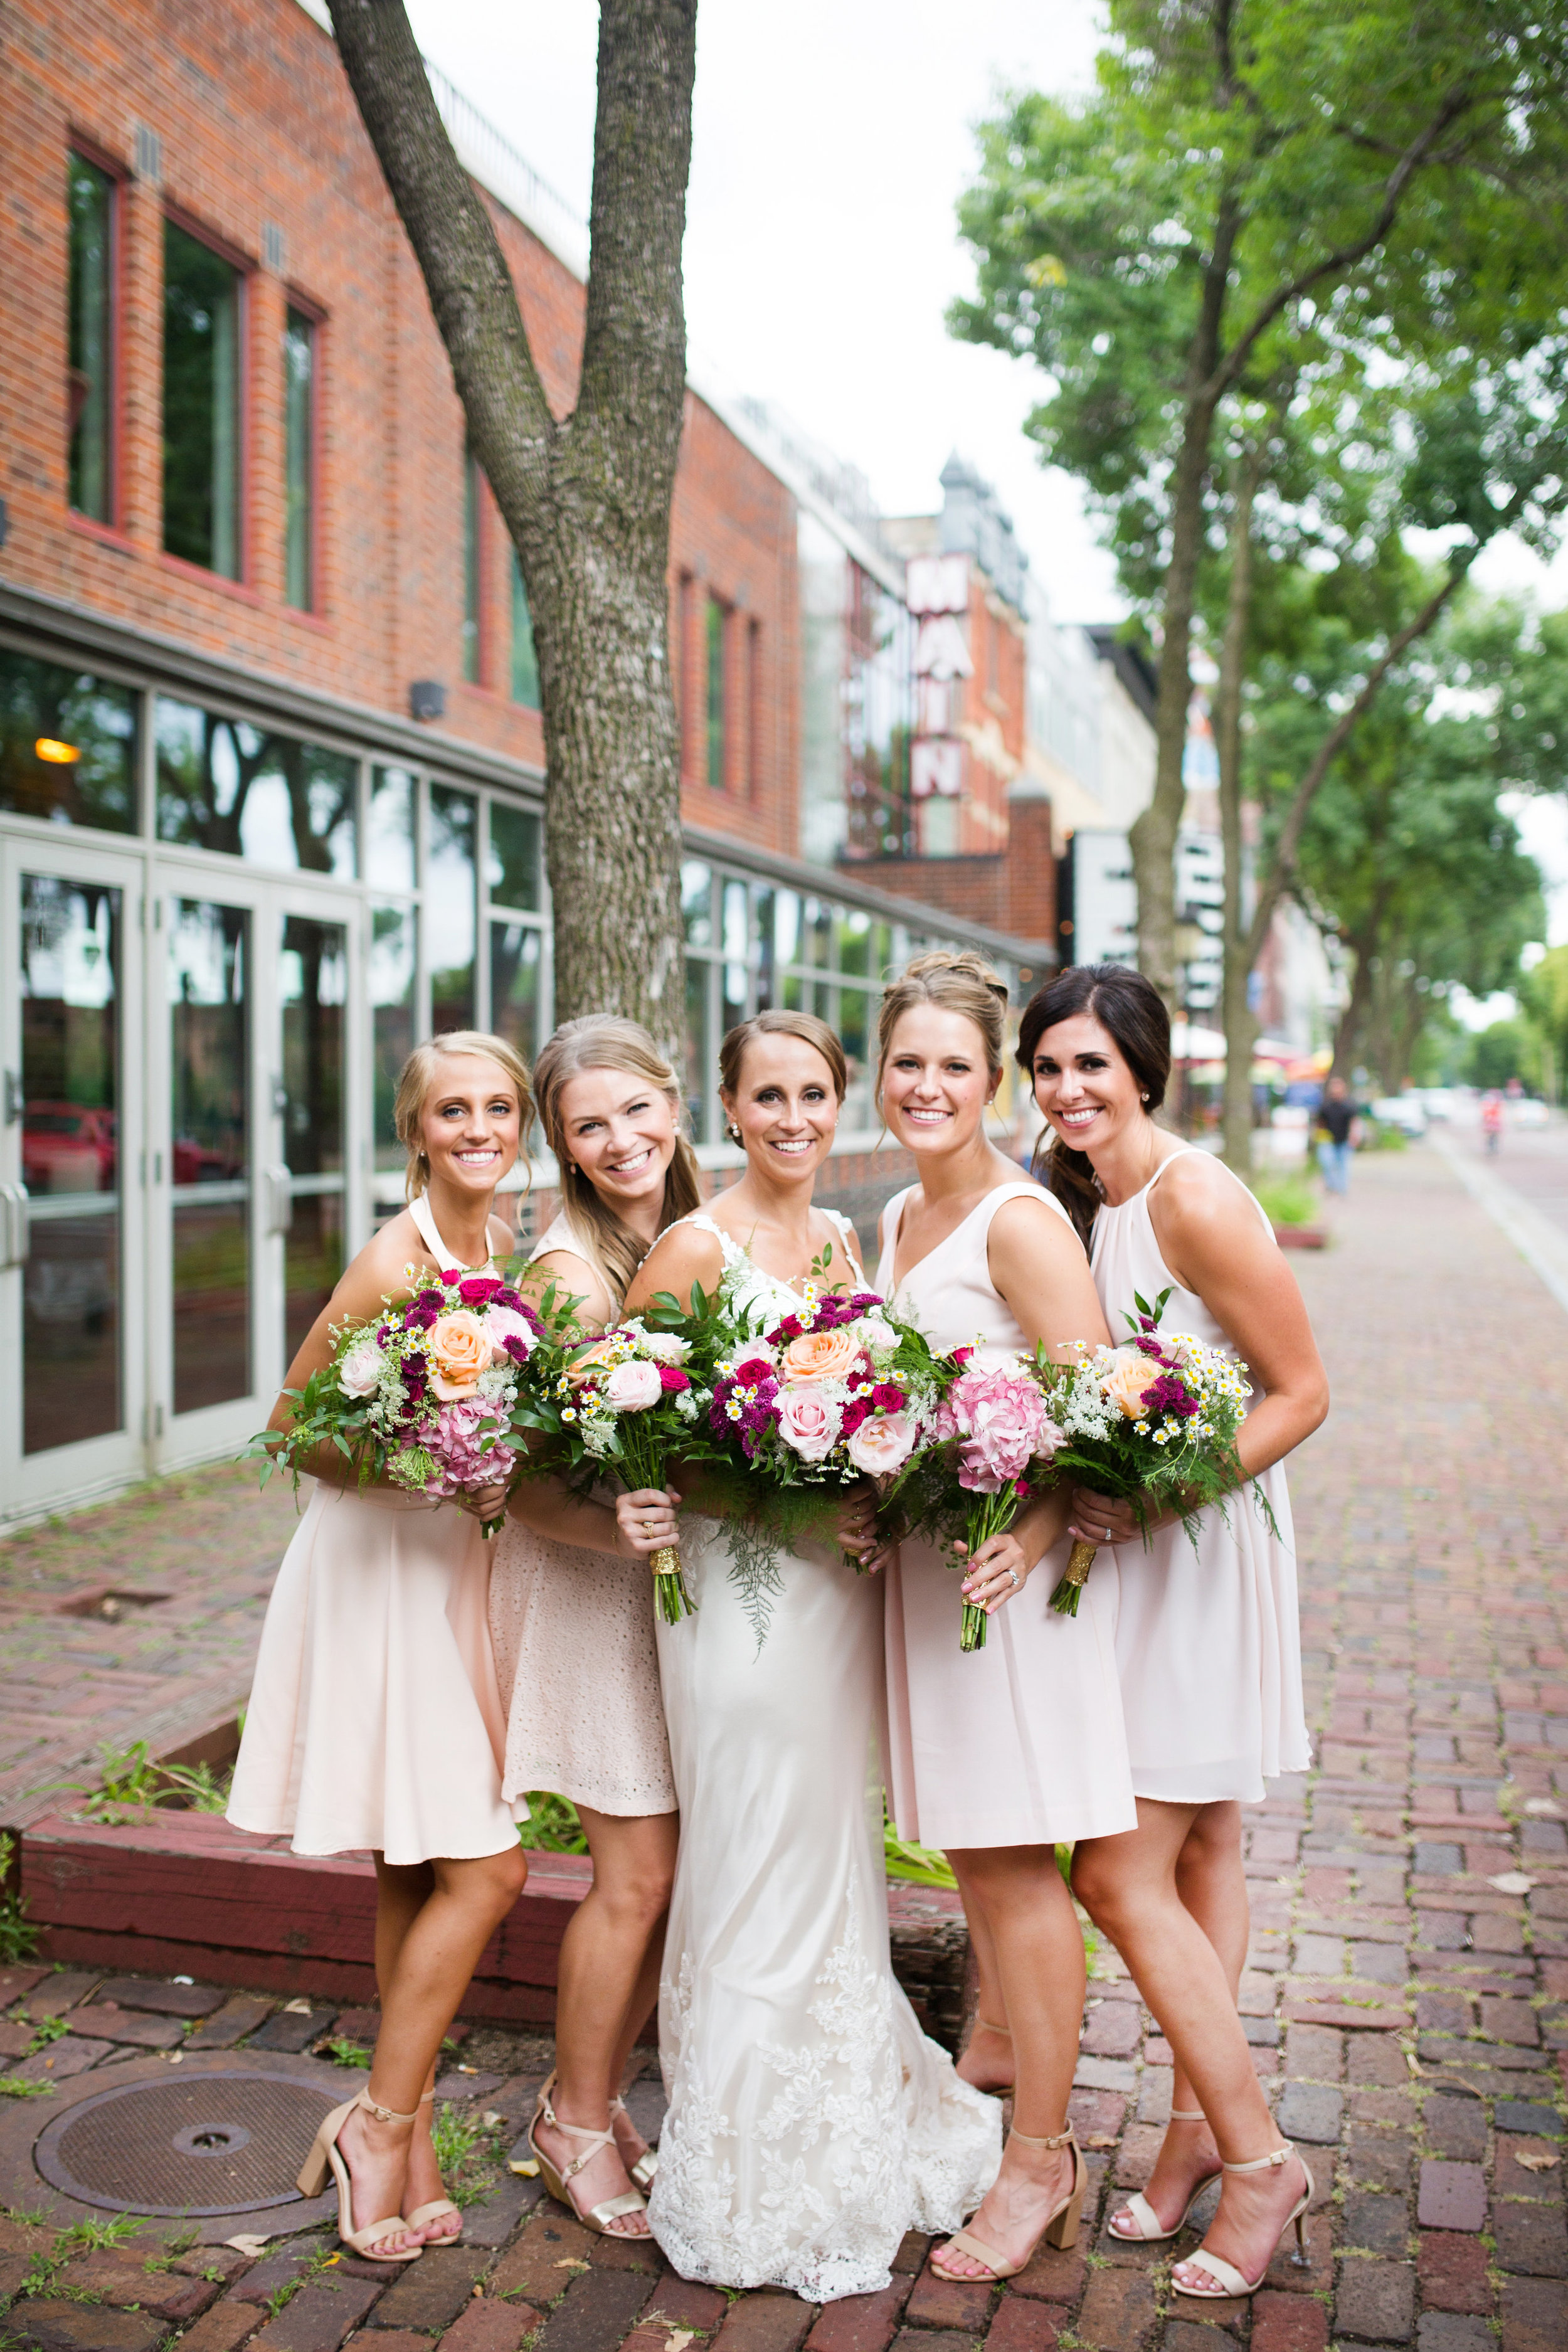 Kaylie + Travis | Sixpence Events wedding planner in the midwest | Studio KH photography | bridesmaids in blush mismatching dresses | St. Anthony Main